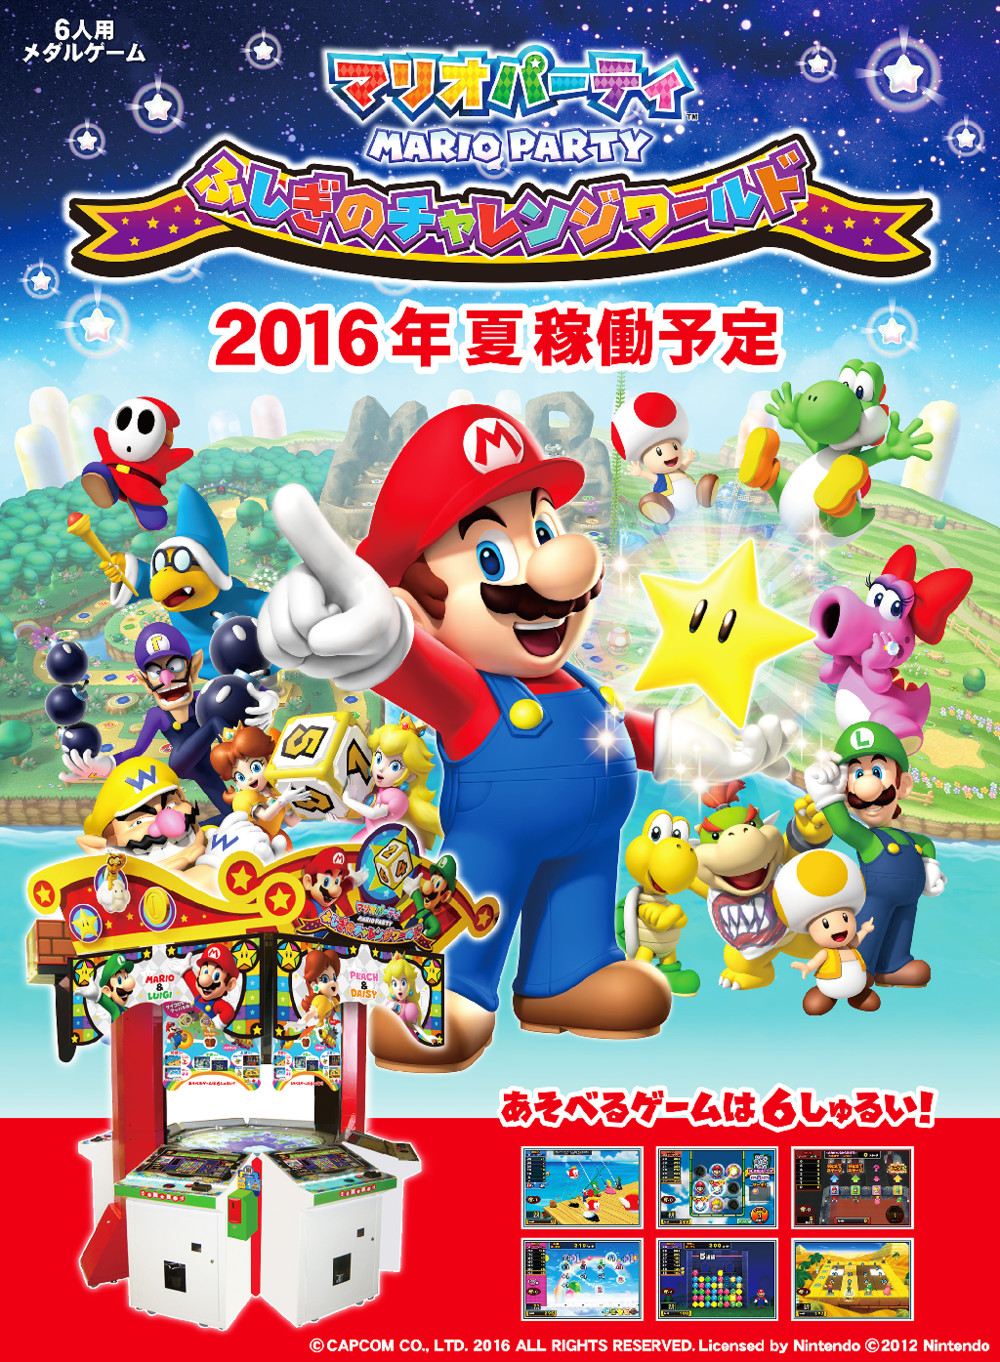 Videos: Mario Party Mysterious Challenge World Footage And Possible Gameplay Details